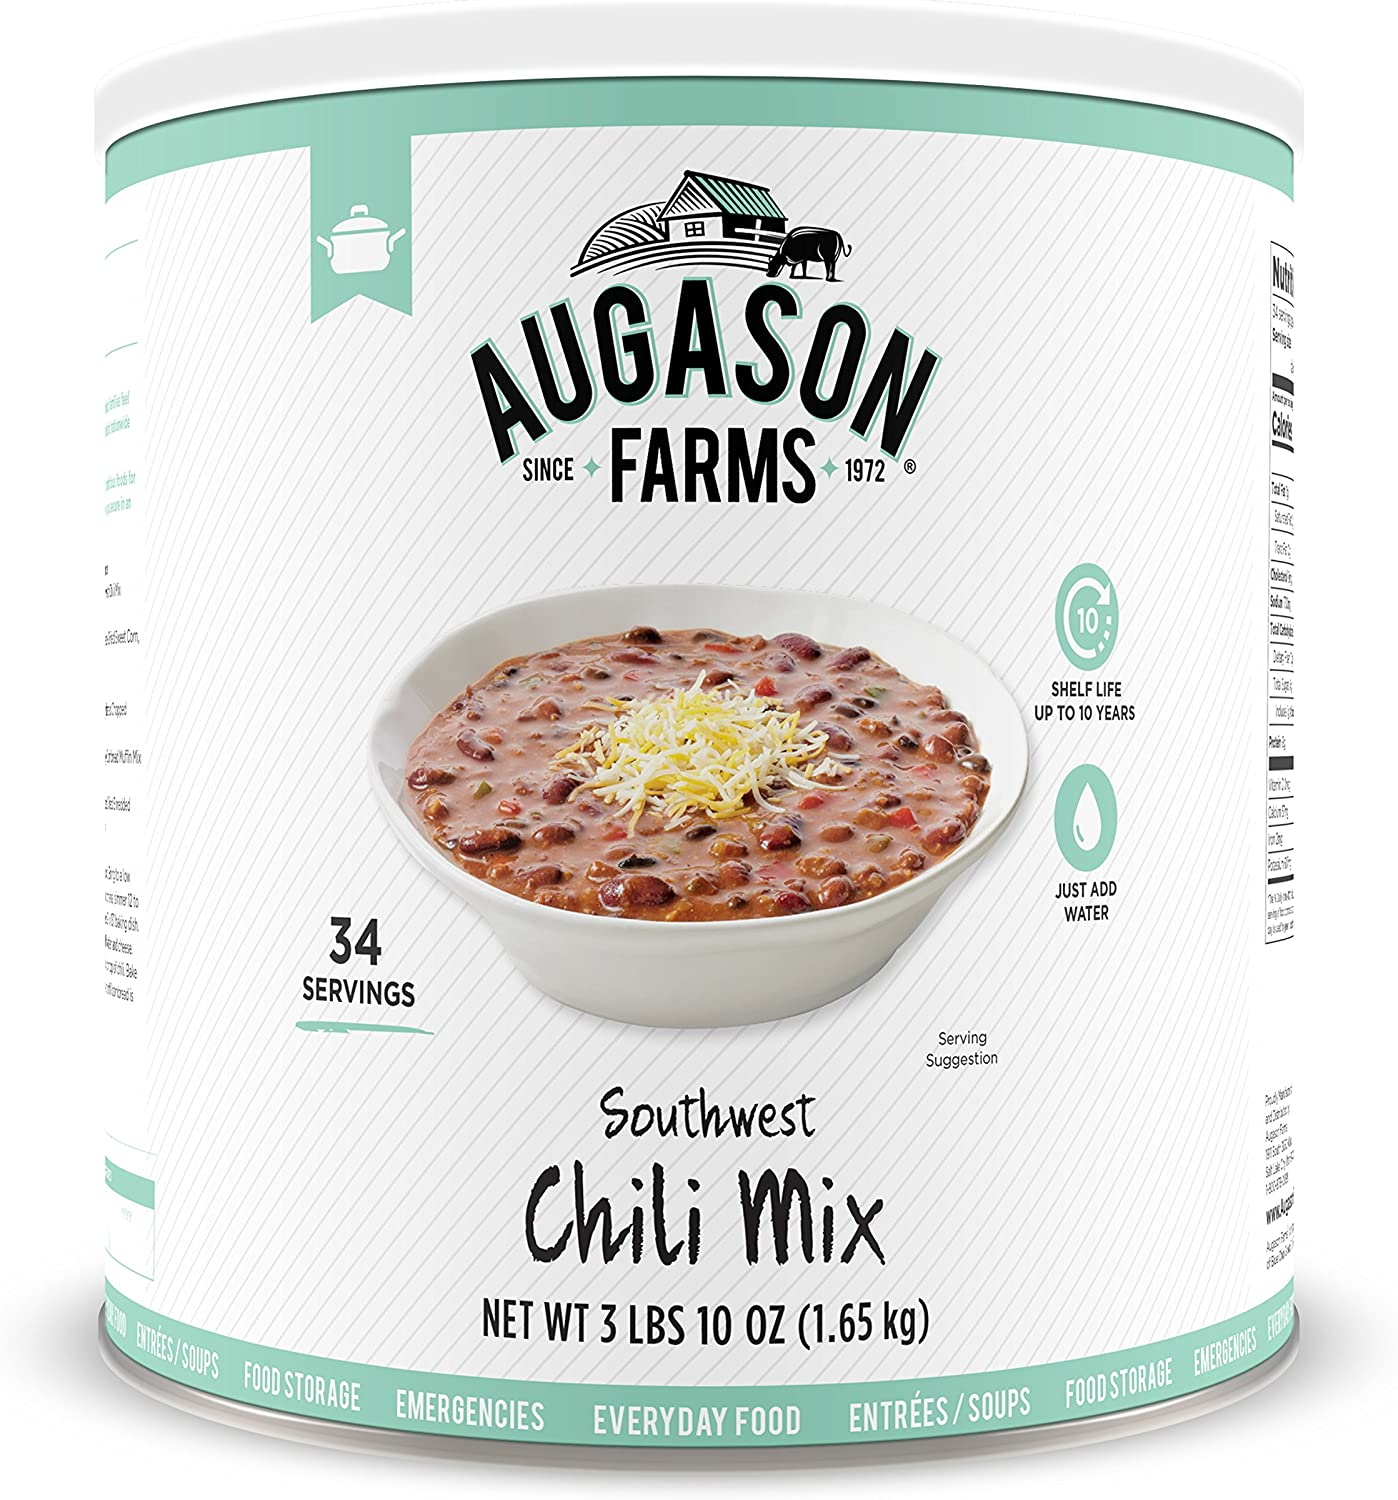 Augason Farms Southwest Chili Mix Net wt. 3 lbs 10 oz (1.65 kg)